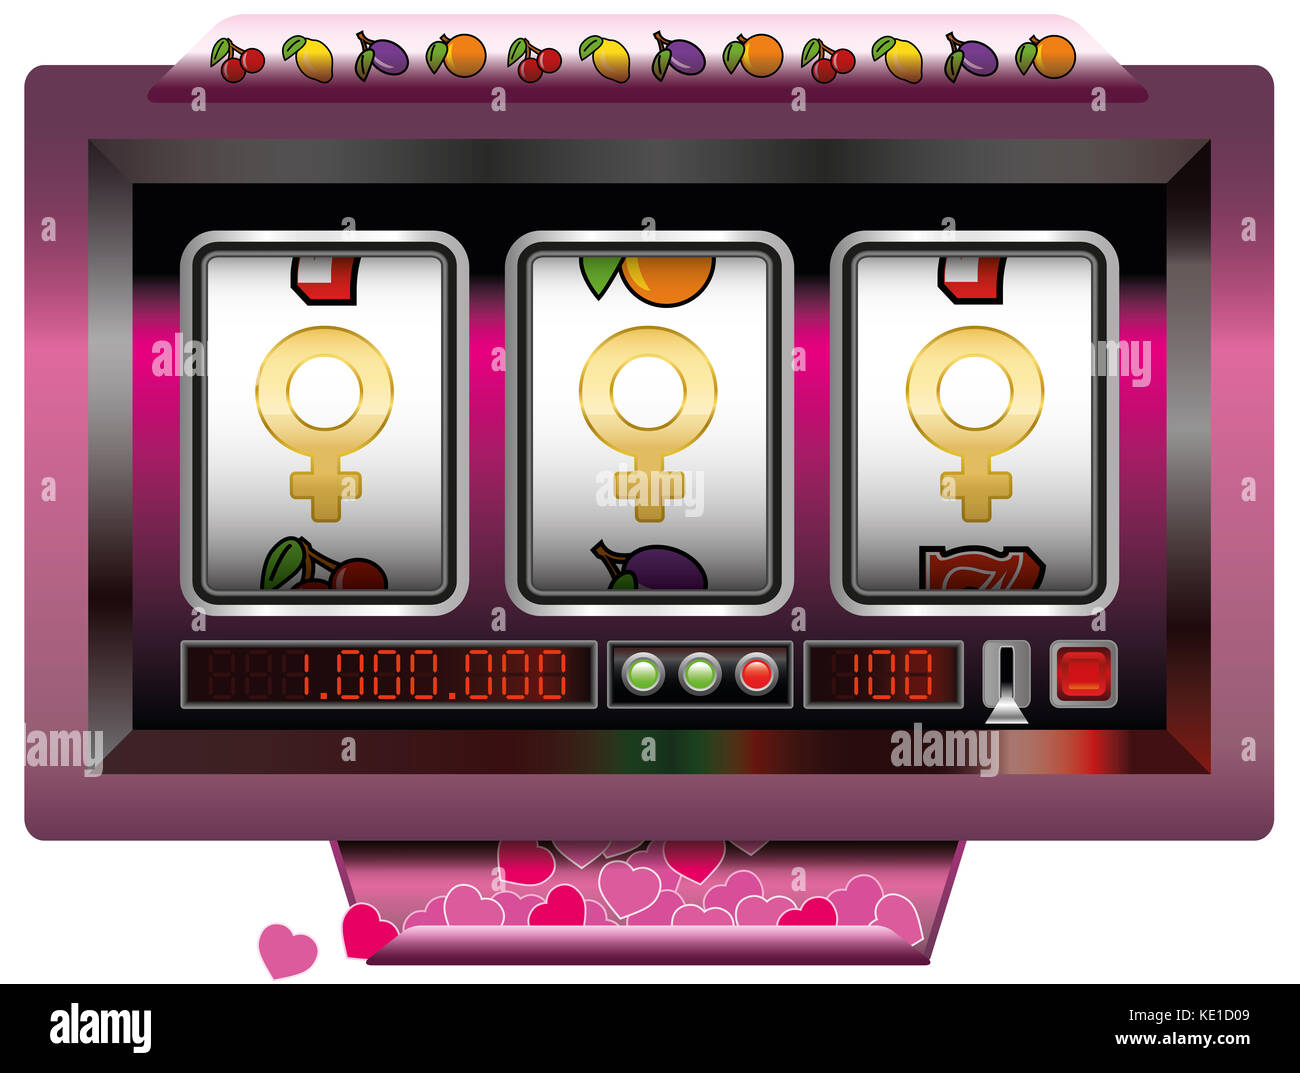 dream girl win with slot machine symbol for having good fortune to